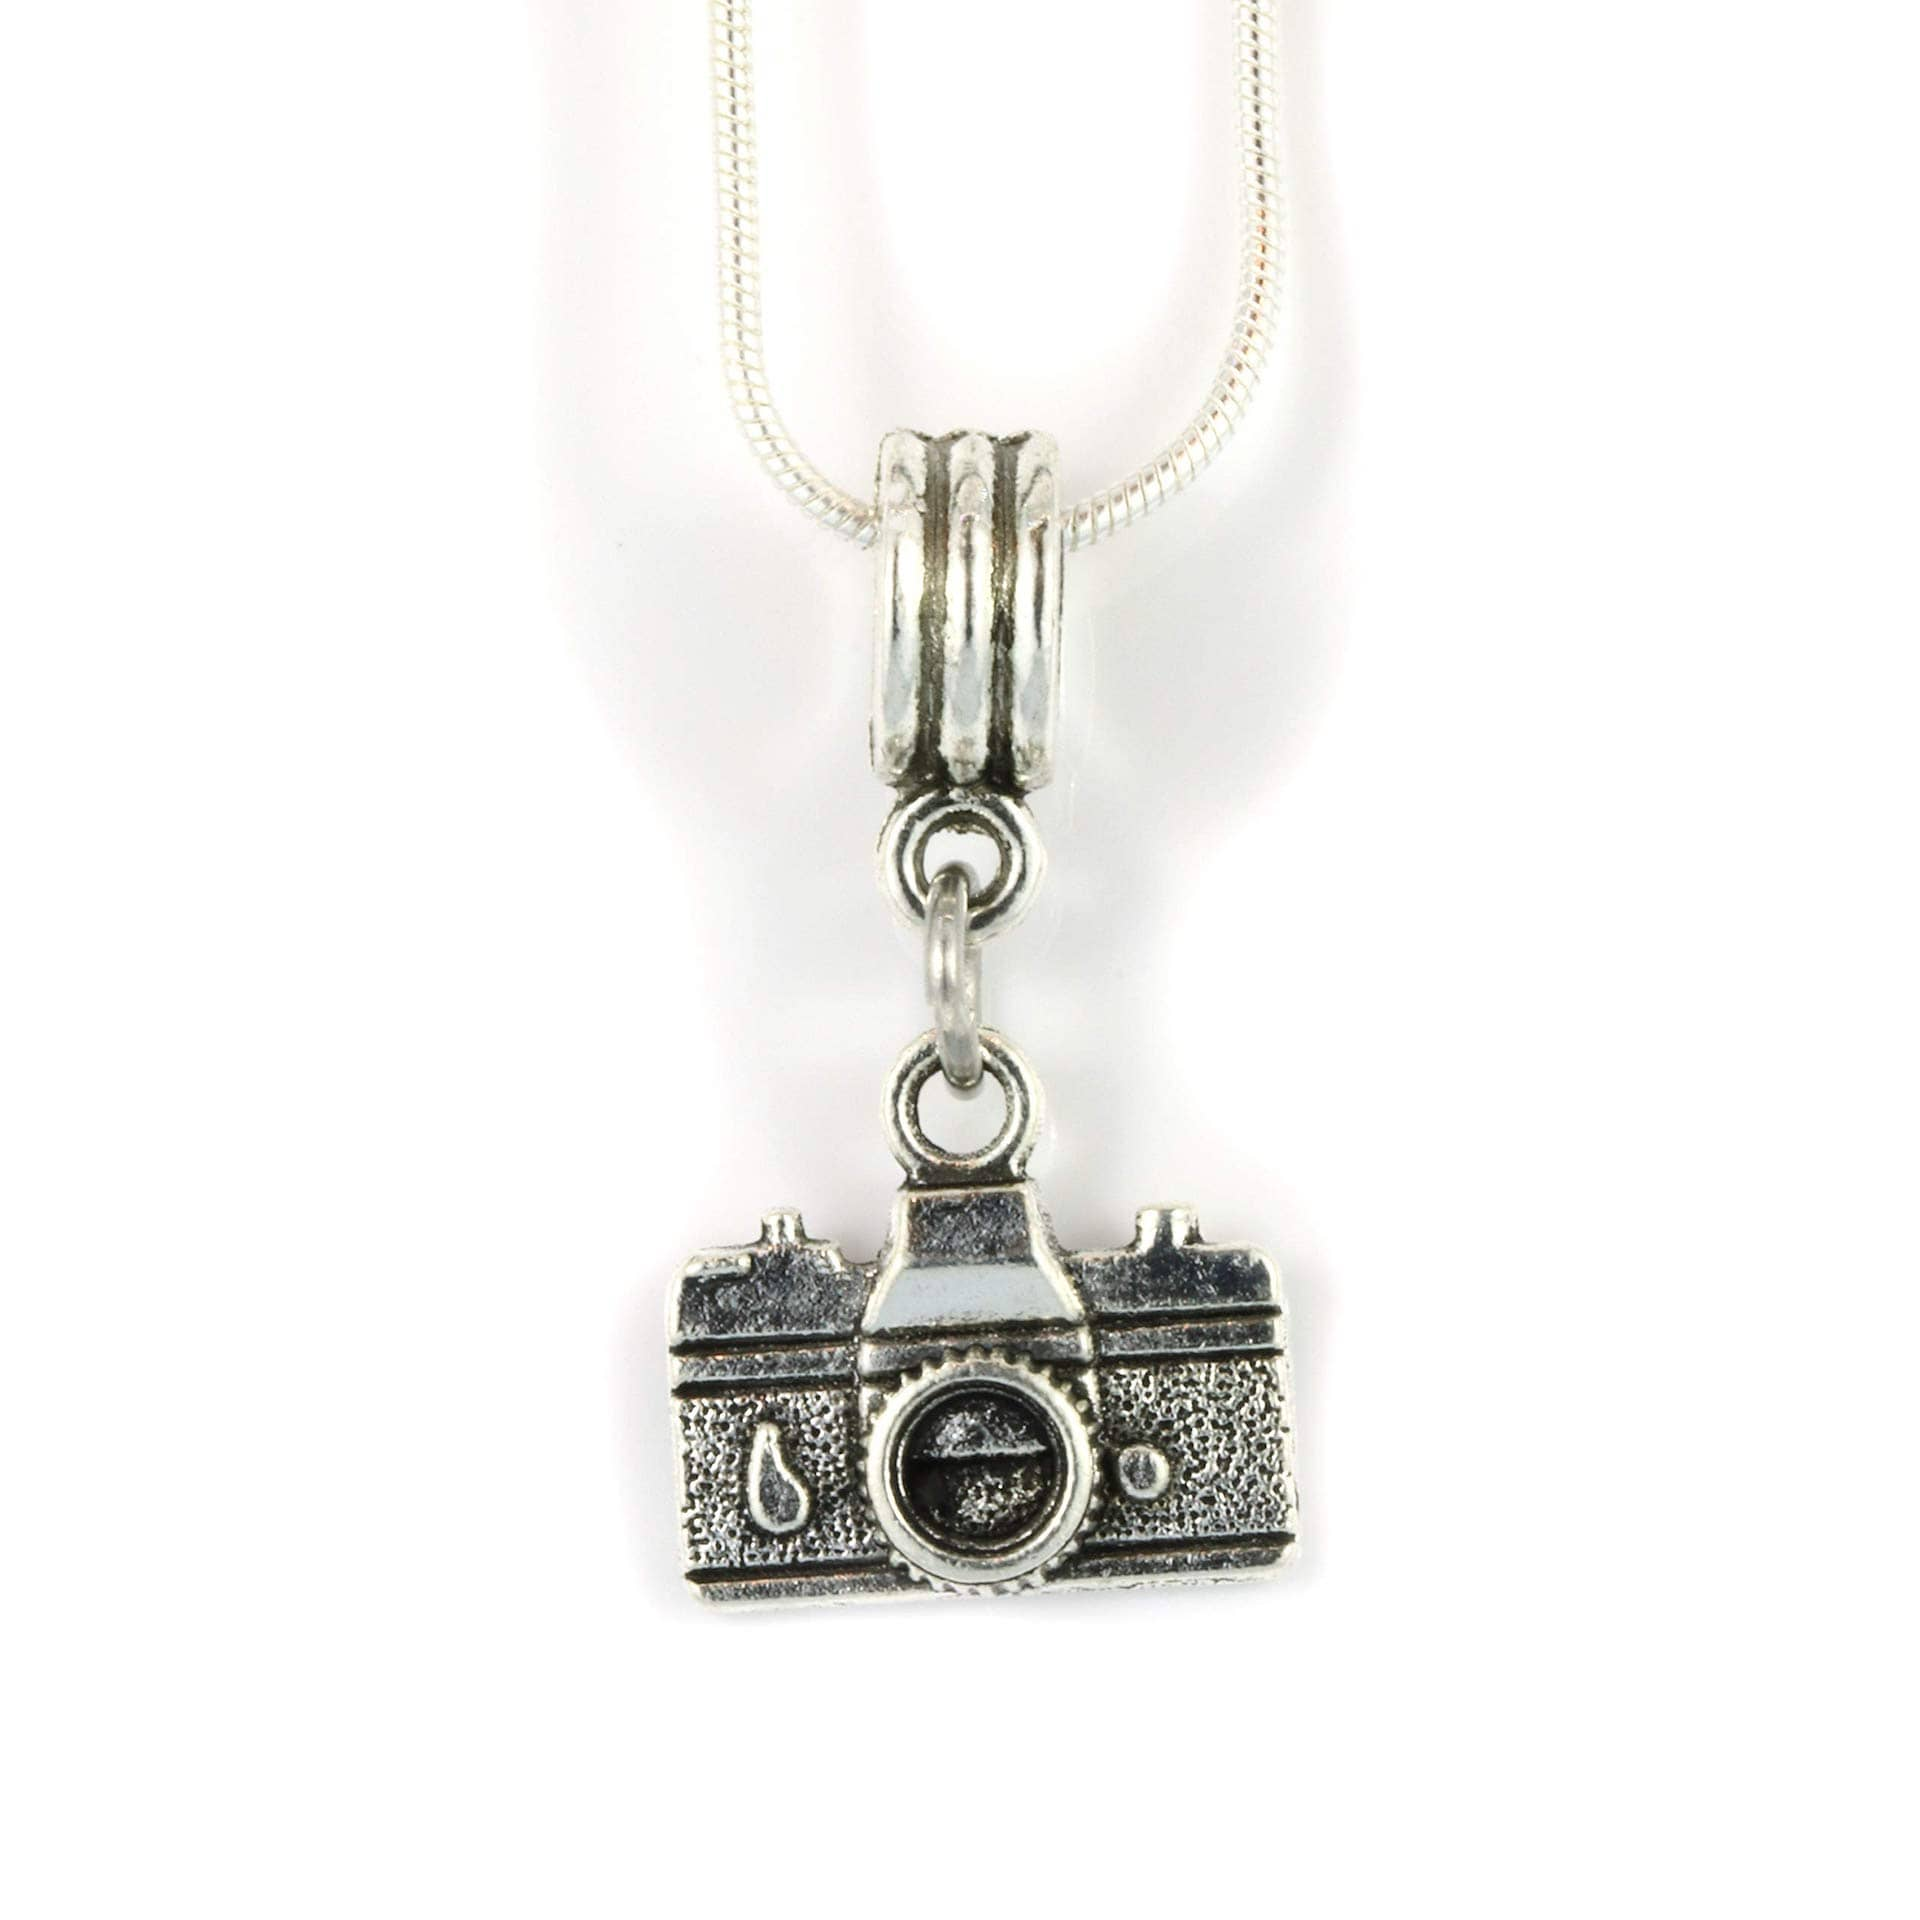 Best Photo Gifts for Photographers - Ideas Photographer Lovers - Photography Jewelry